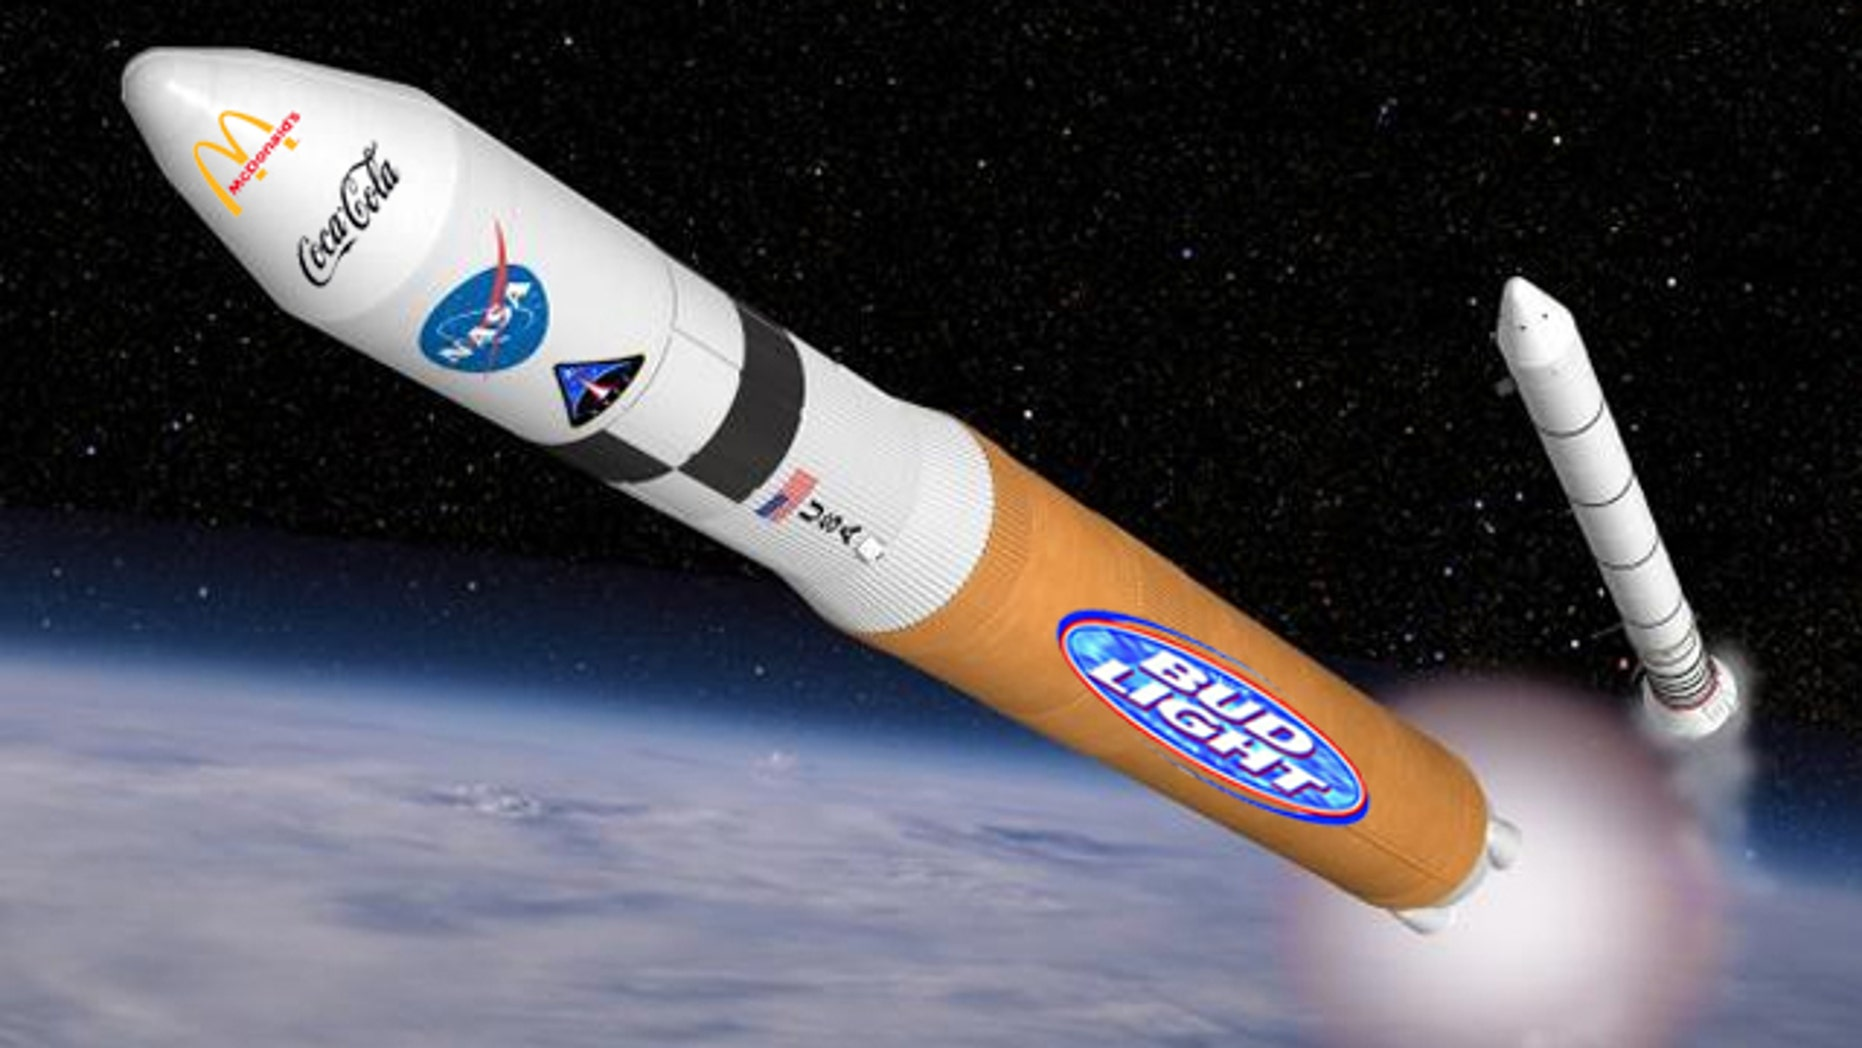 Corporate sponsorships may be the key funding boost for a mission to Mars, researchers say.